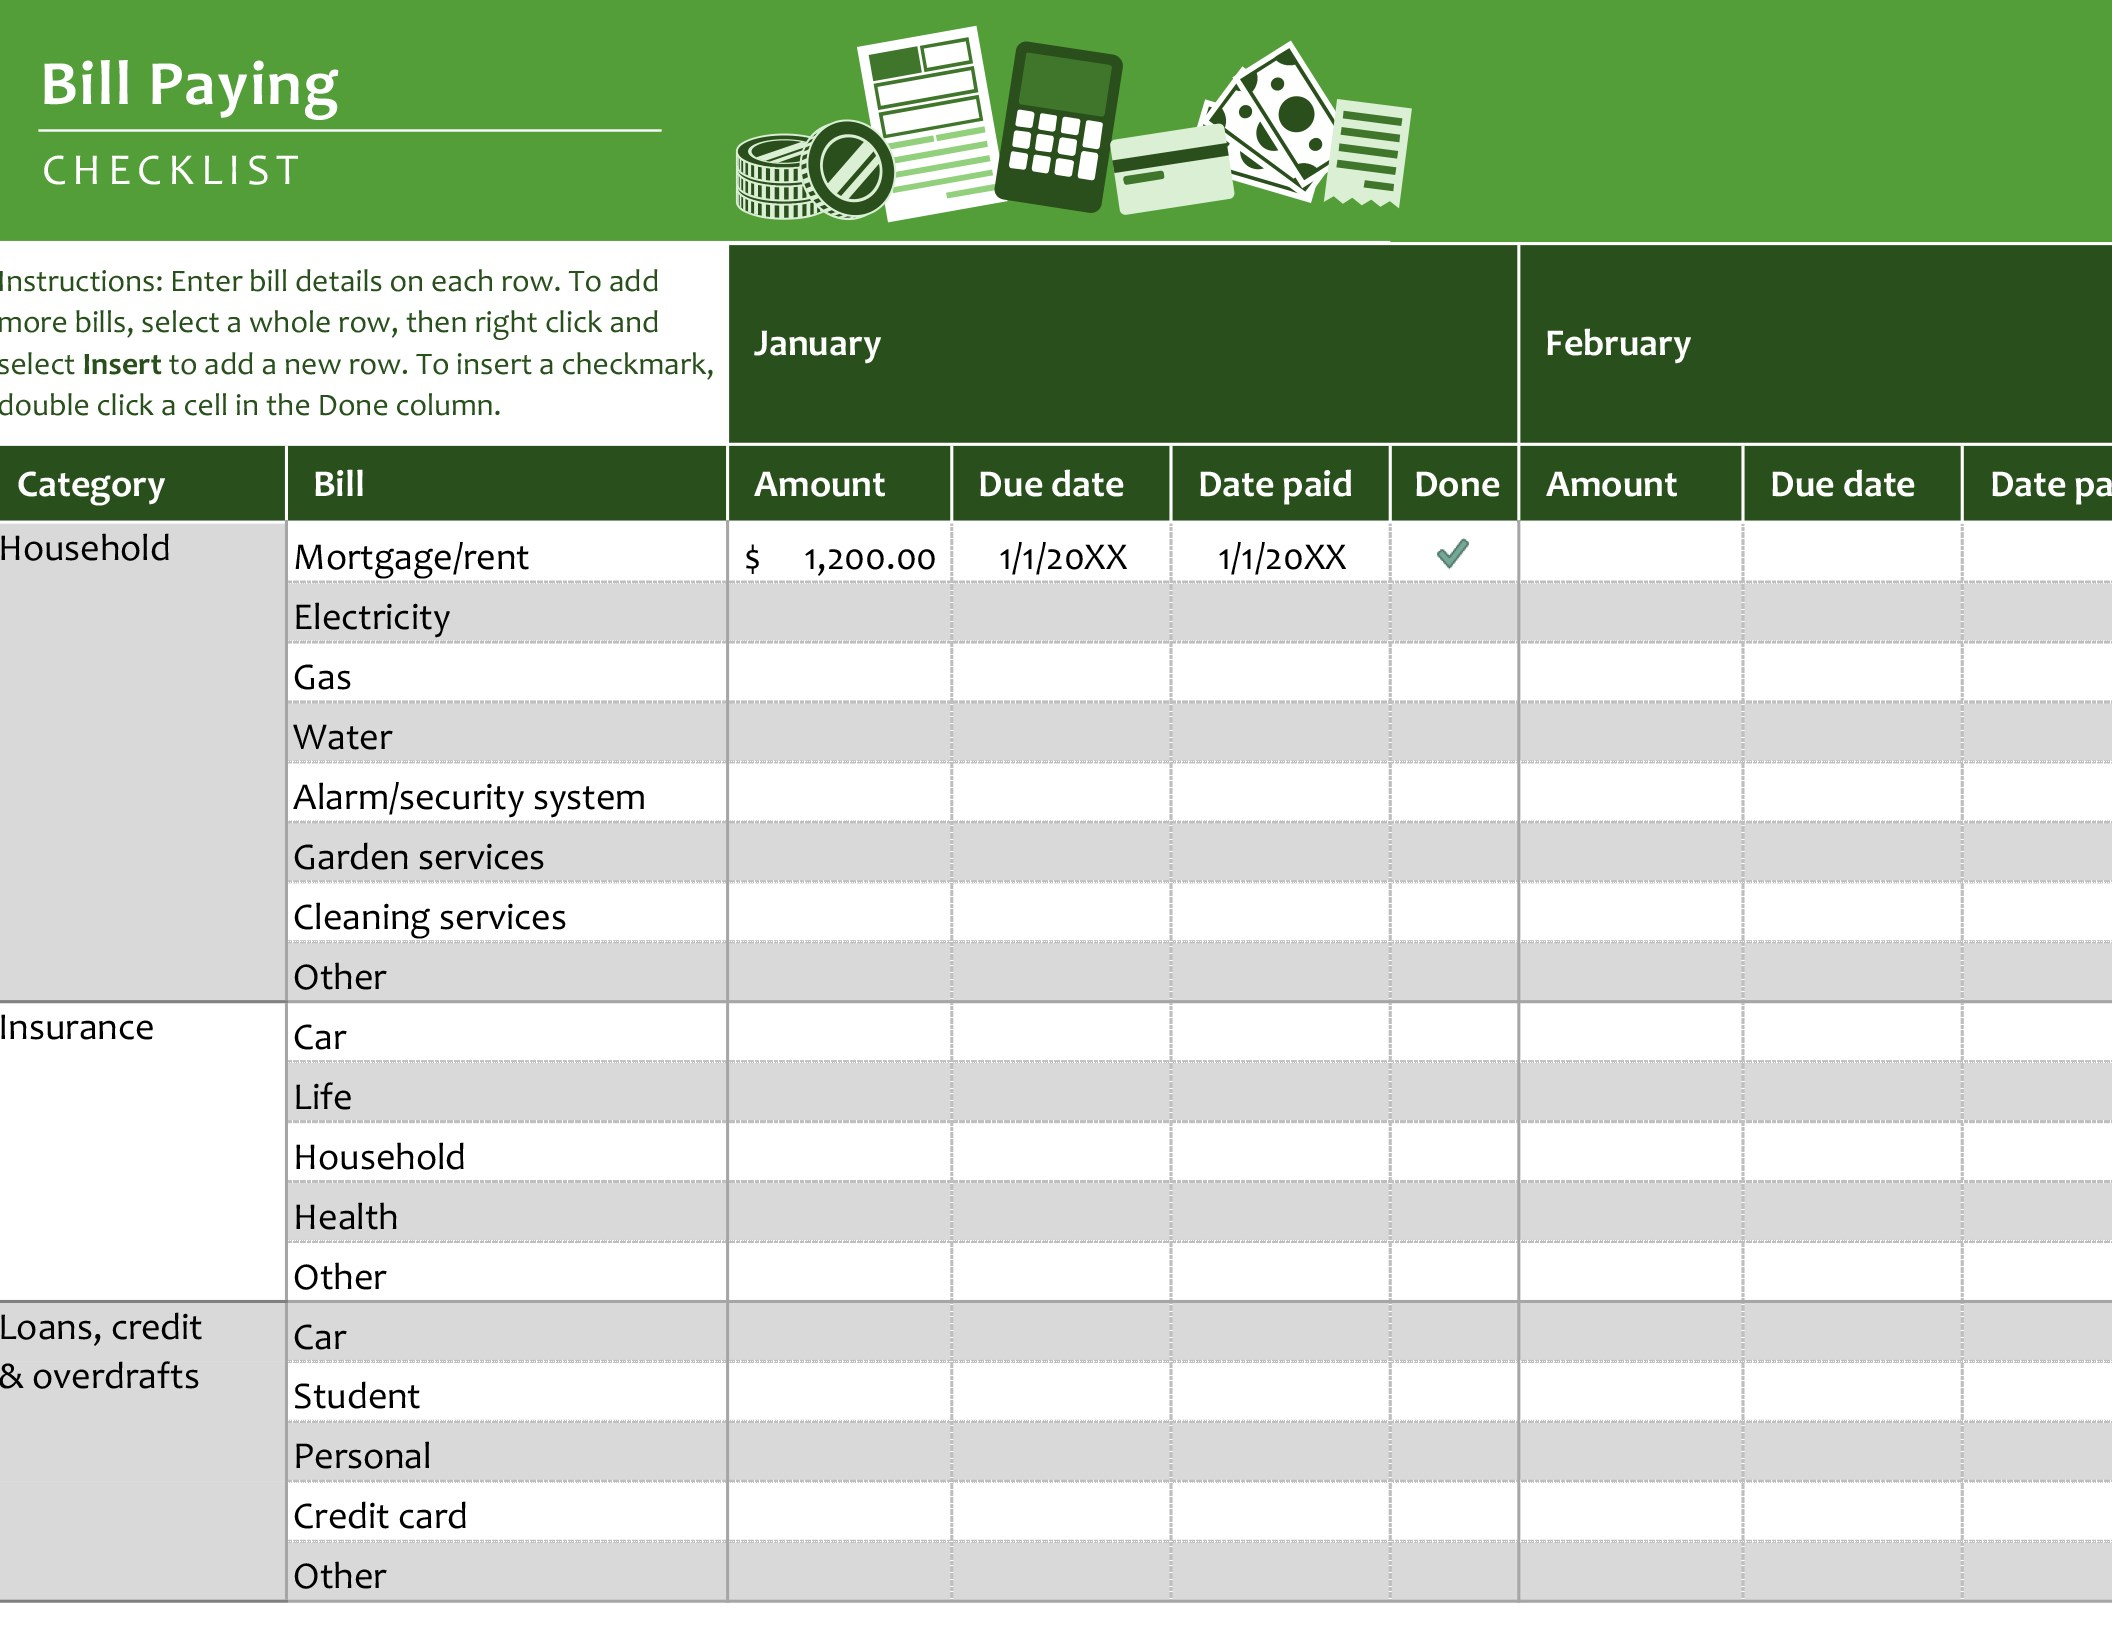 Bill Paying Checklist for Free Printable Bill Payment Schedule